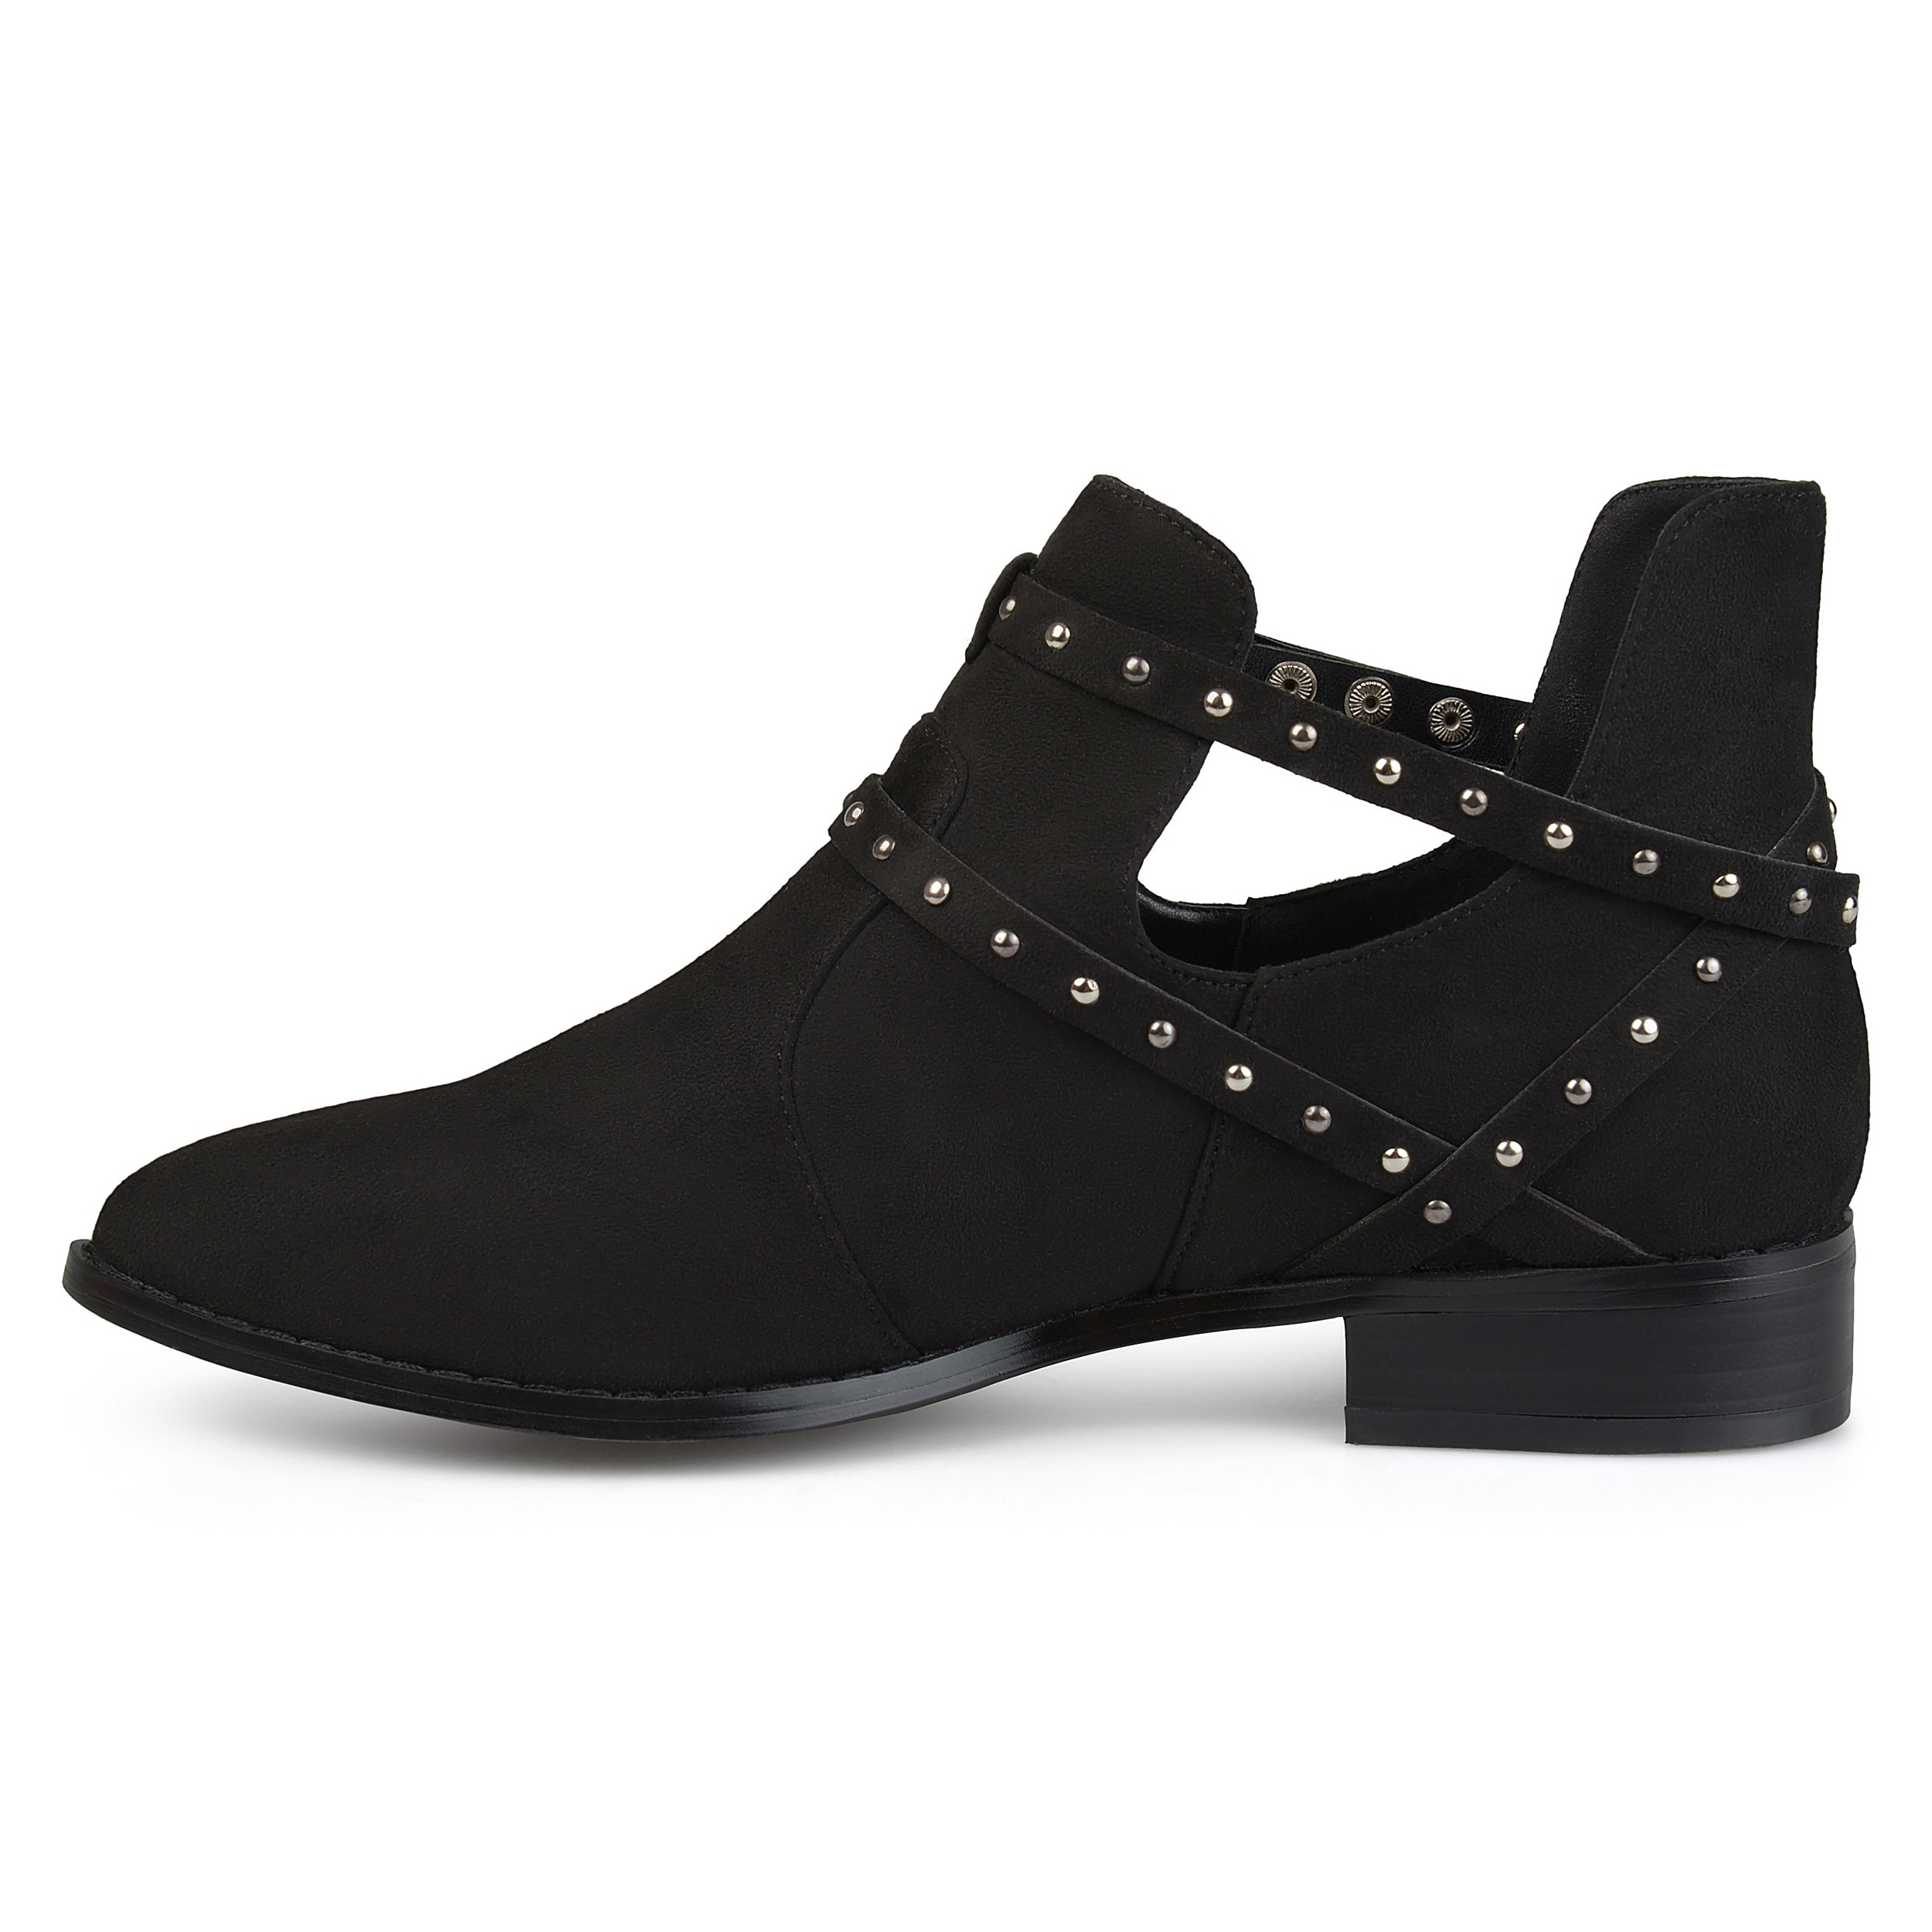 Journee Collection Ozzi ... Women's Ankle Boots hiR1S07M